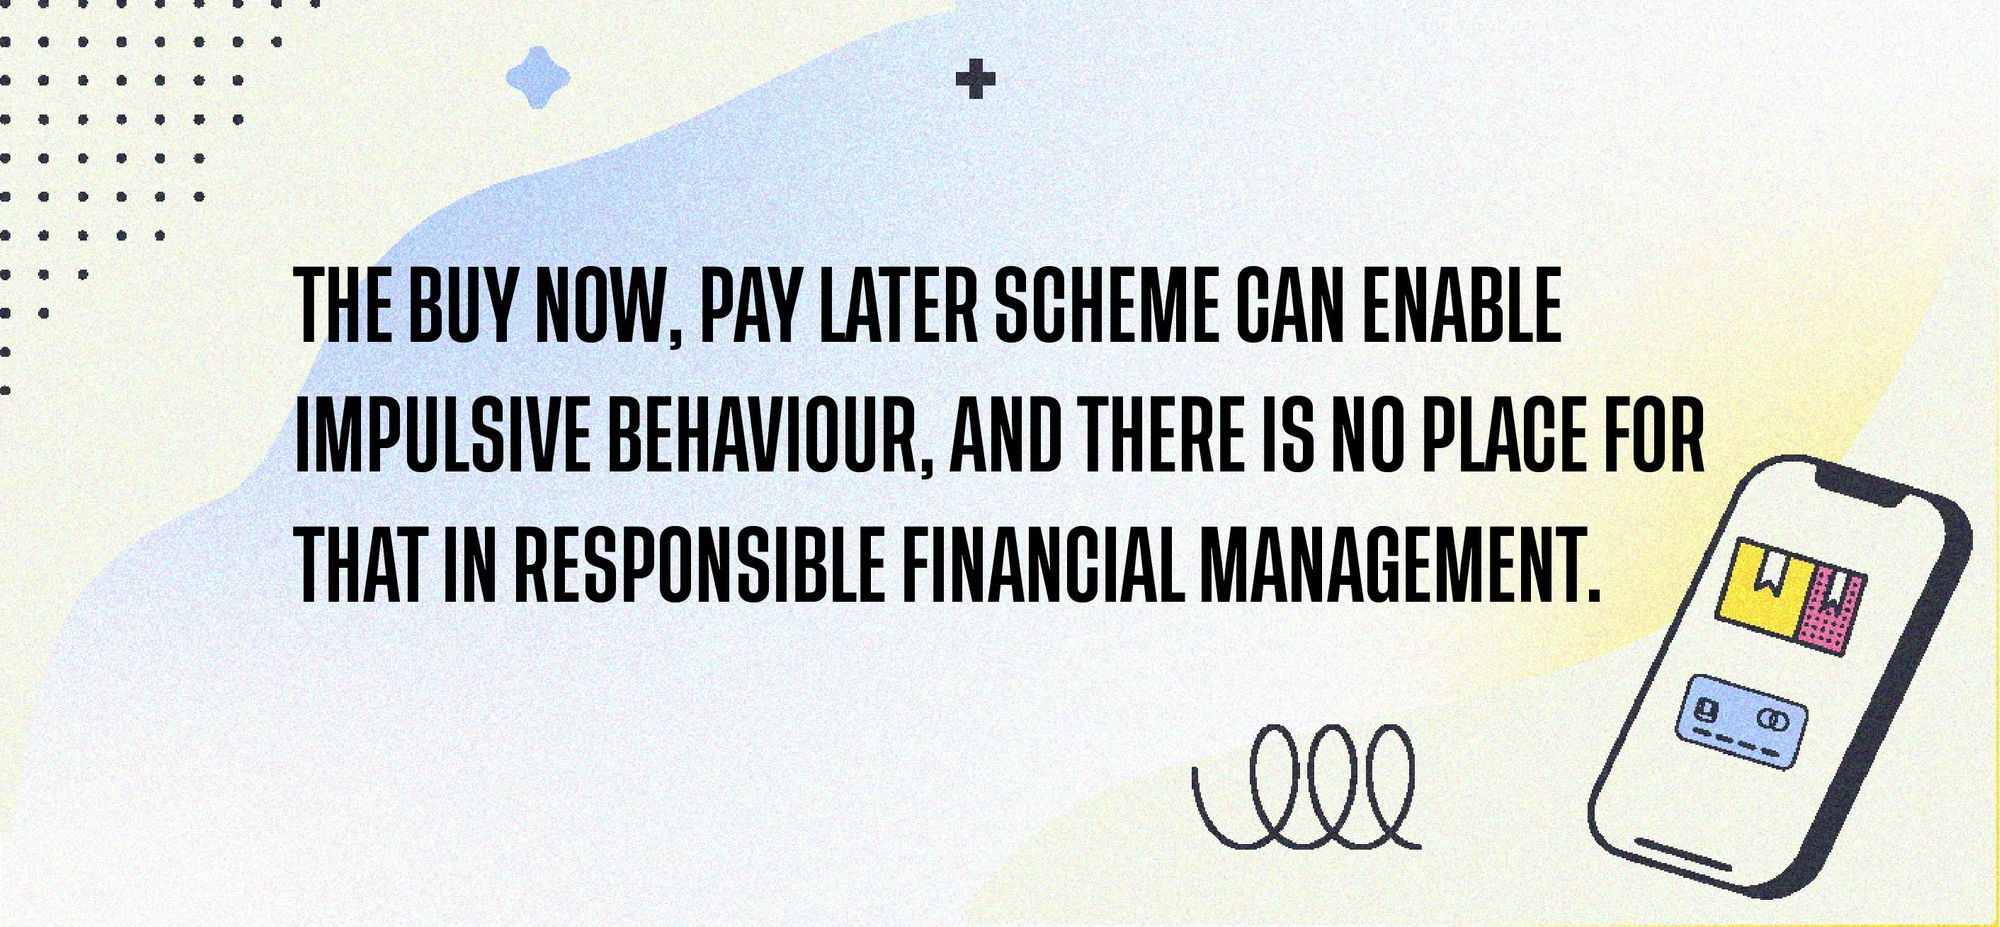 The buy now, pay later scheme can enable impulsive behaviour, and there is no place for that in responsible financial management.